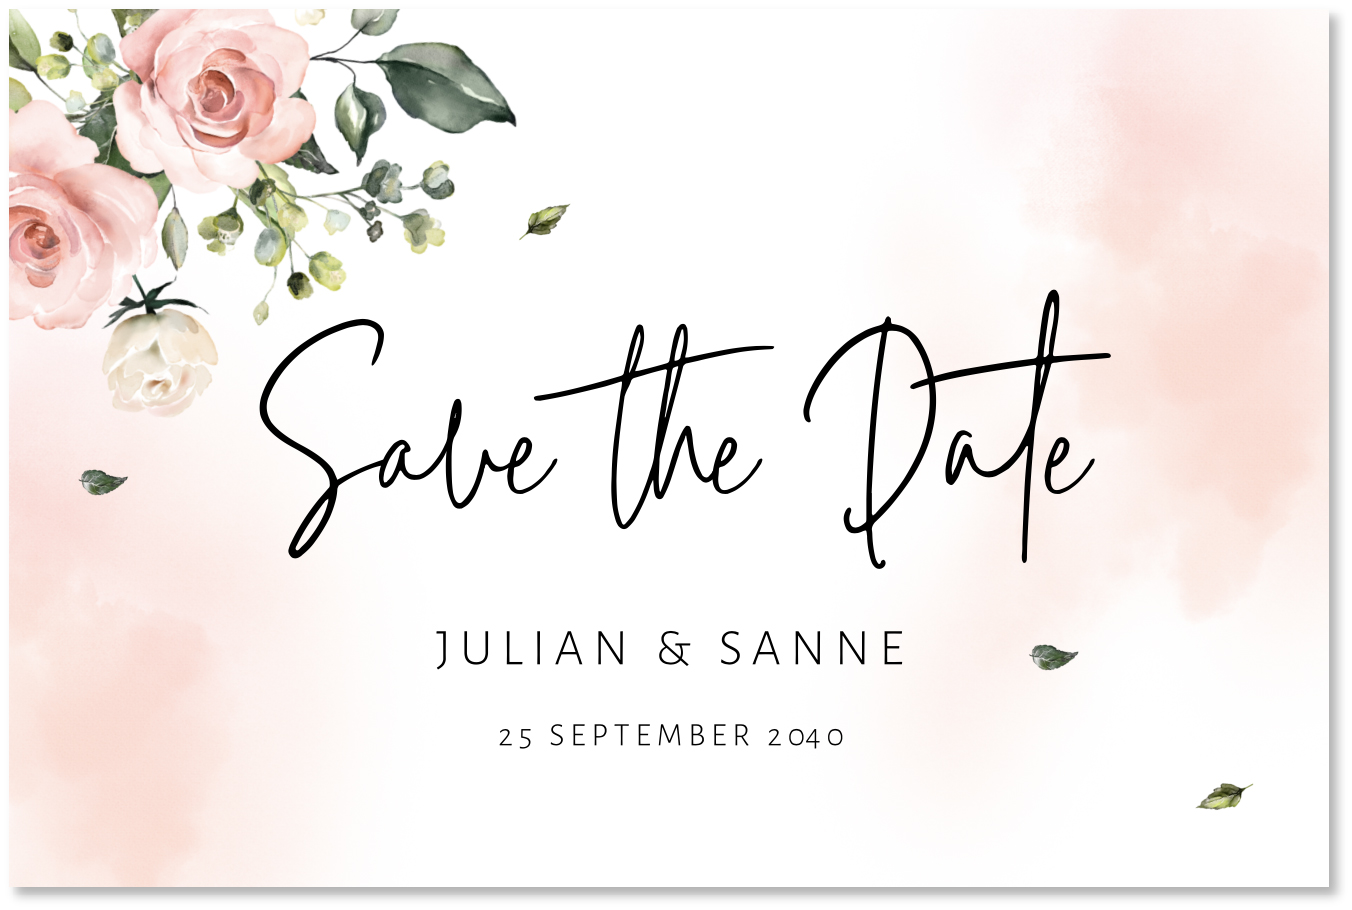 Save the Date kaart floral waterverf